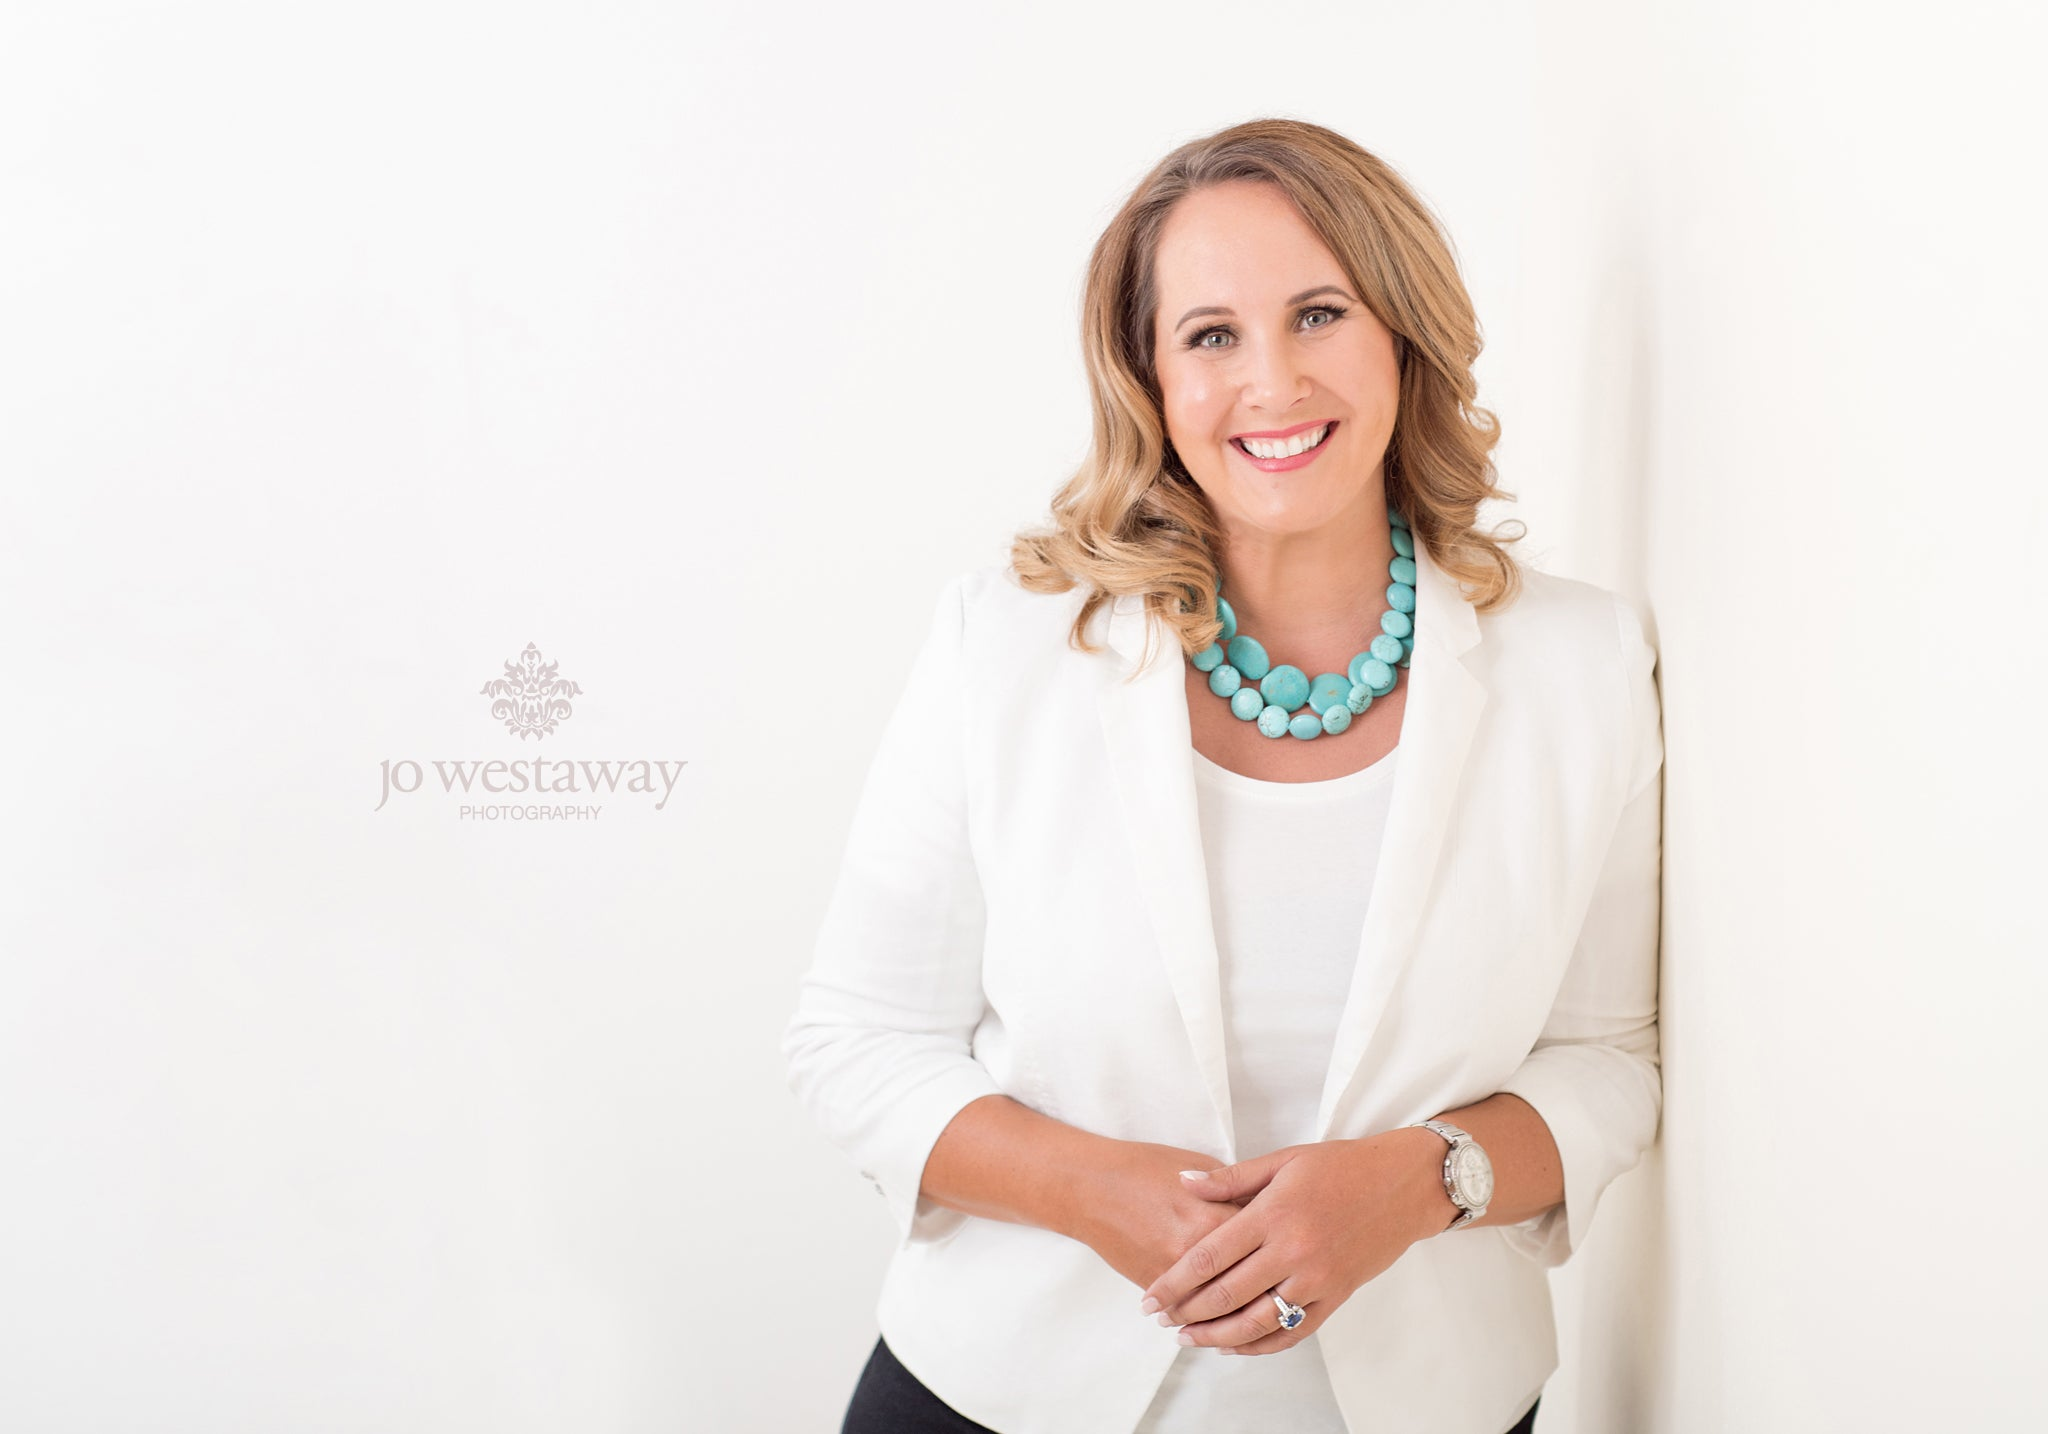 Stunning modern head shots and personal brand photos for businesswomen and entrepreneurs - look confident in photos